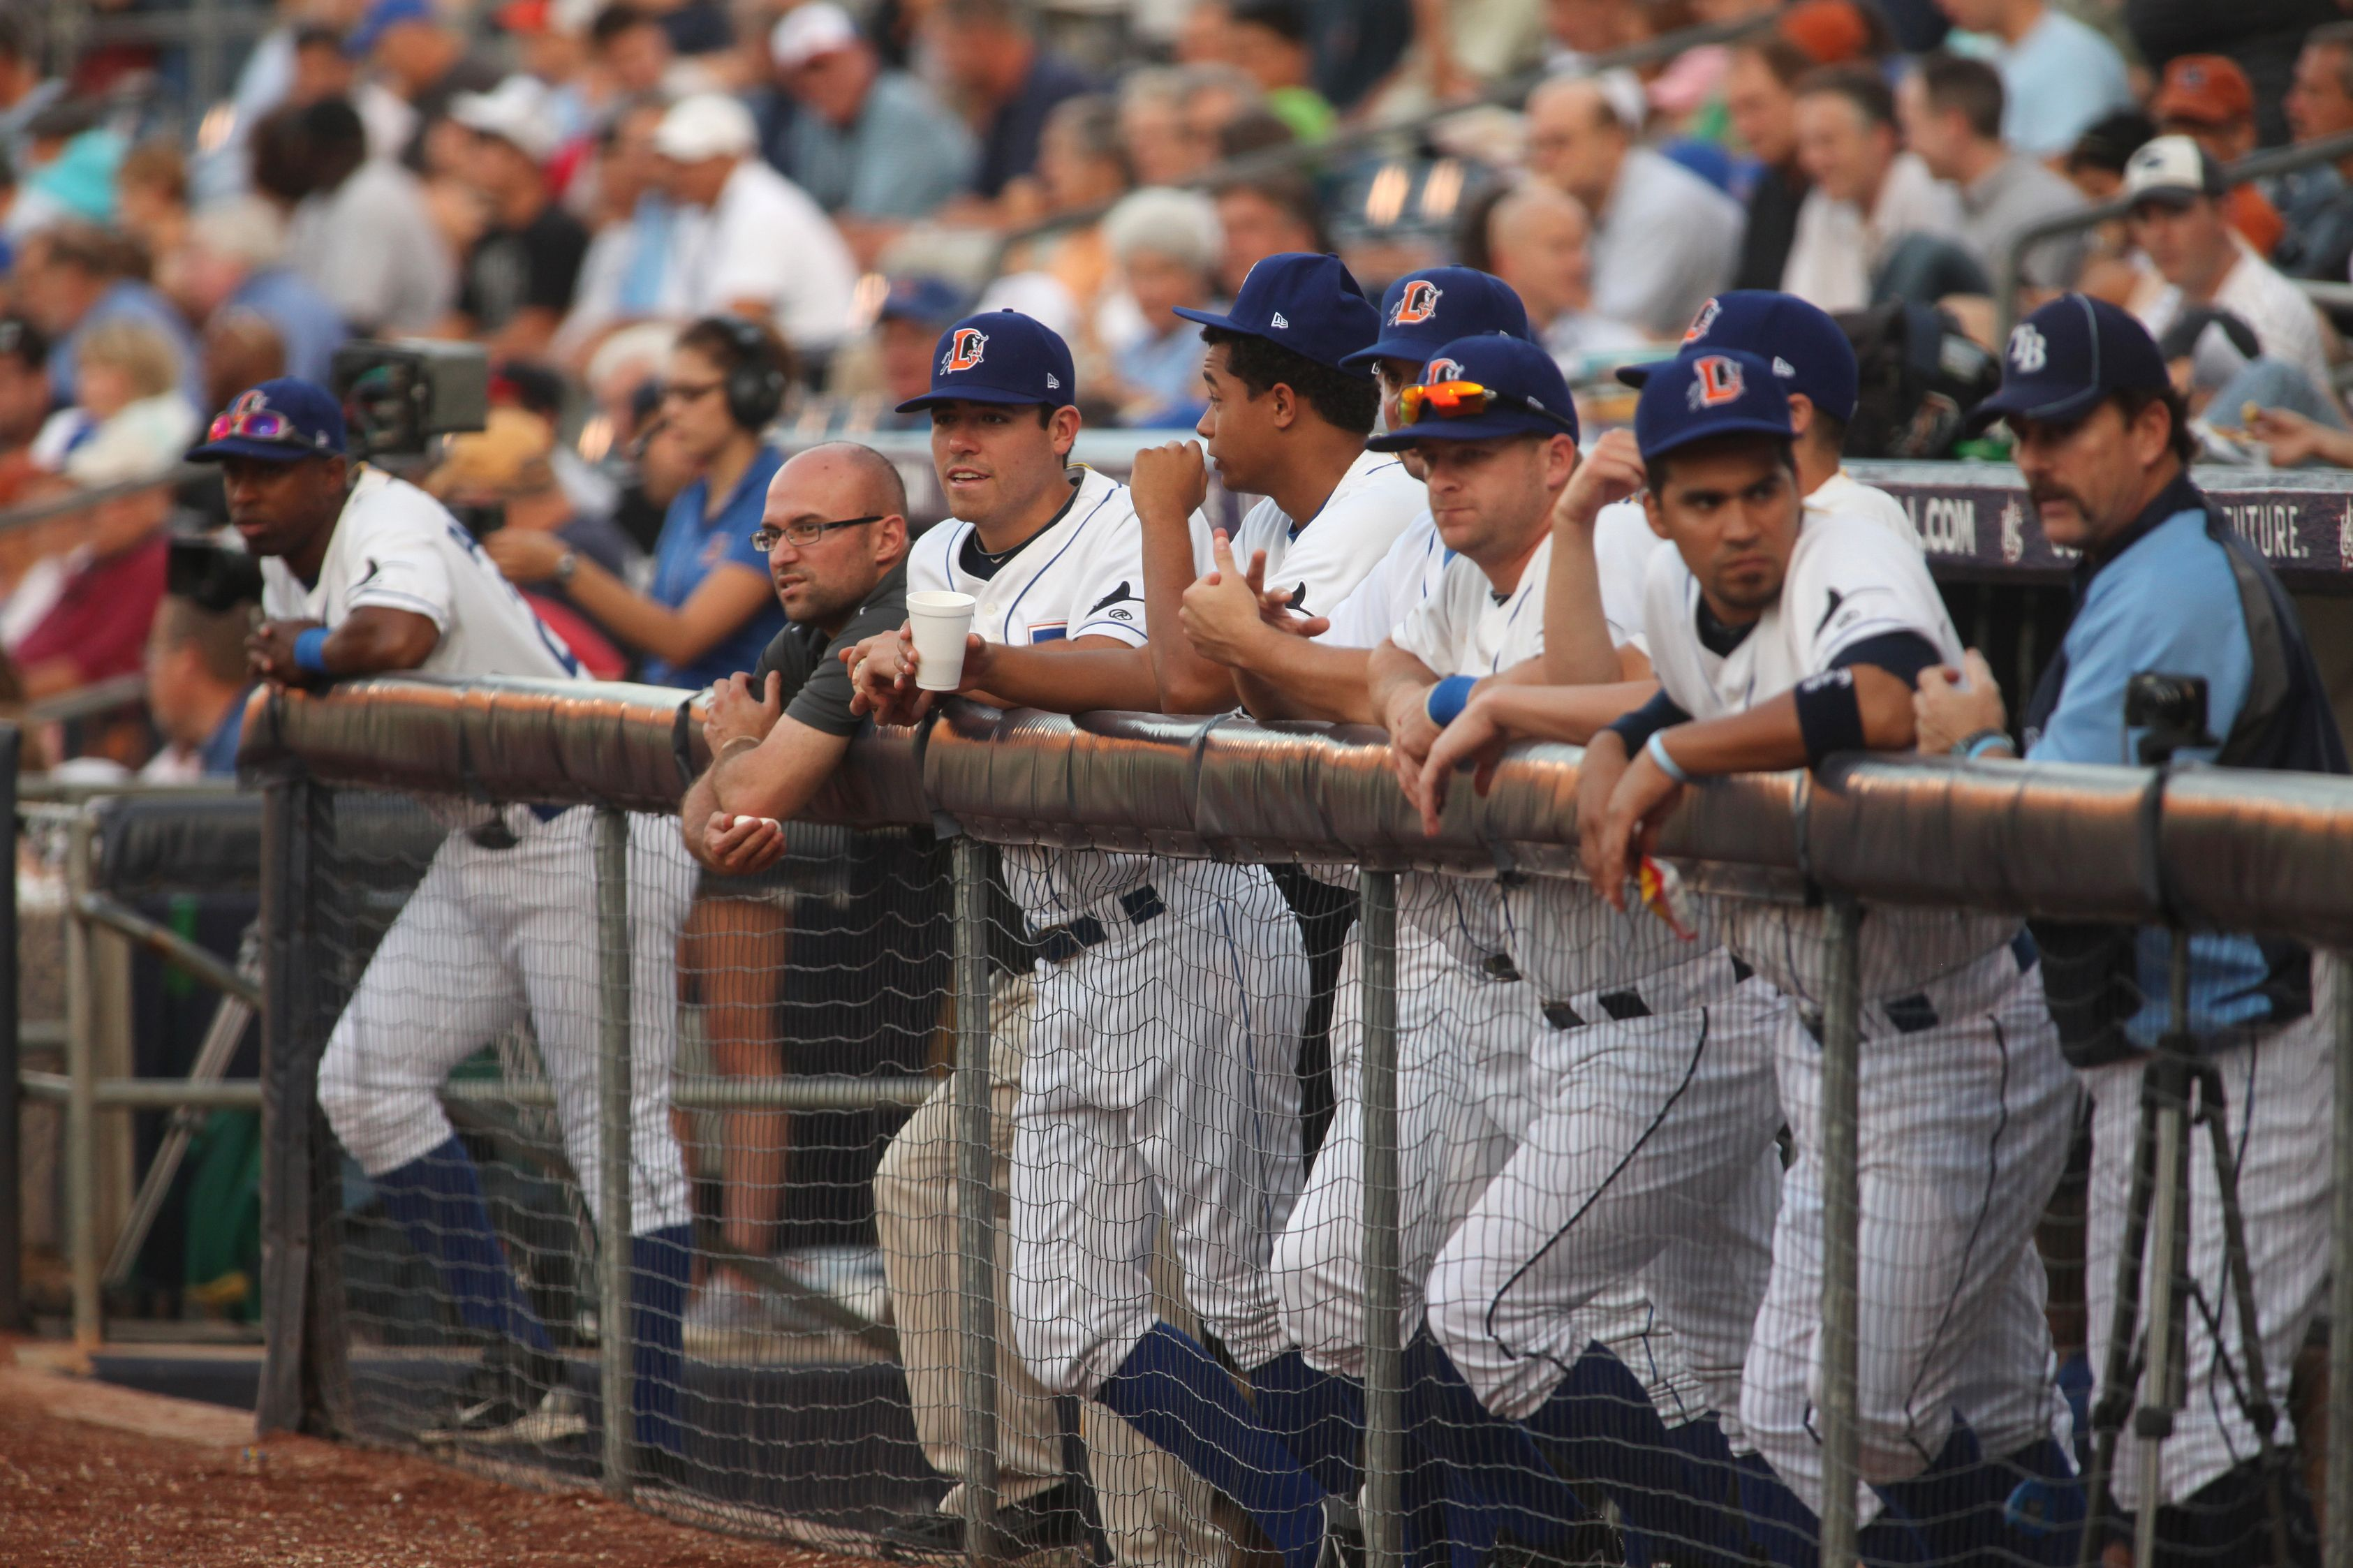 View From The Bulls Dugout With Images Baseball Dugout Durham Dugout